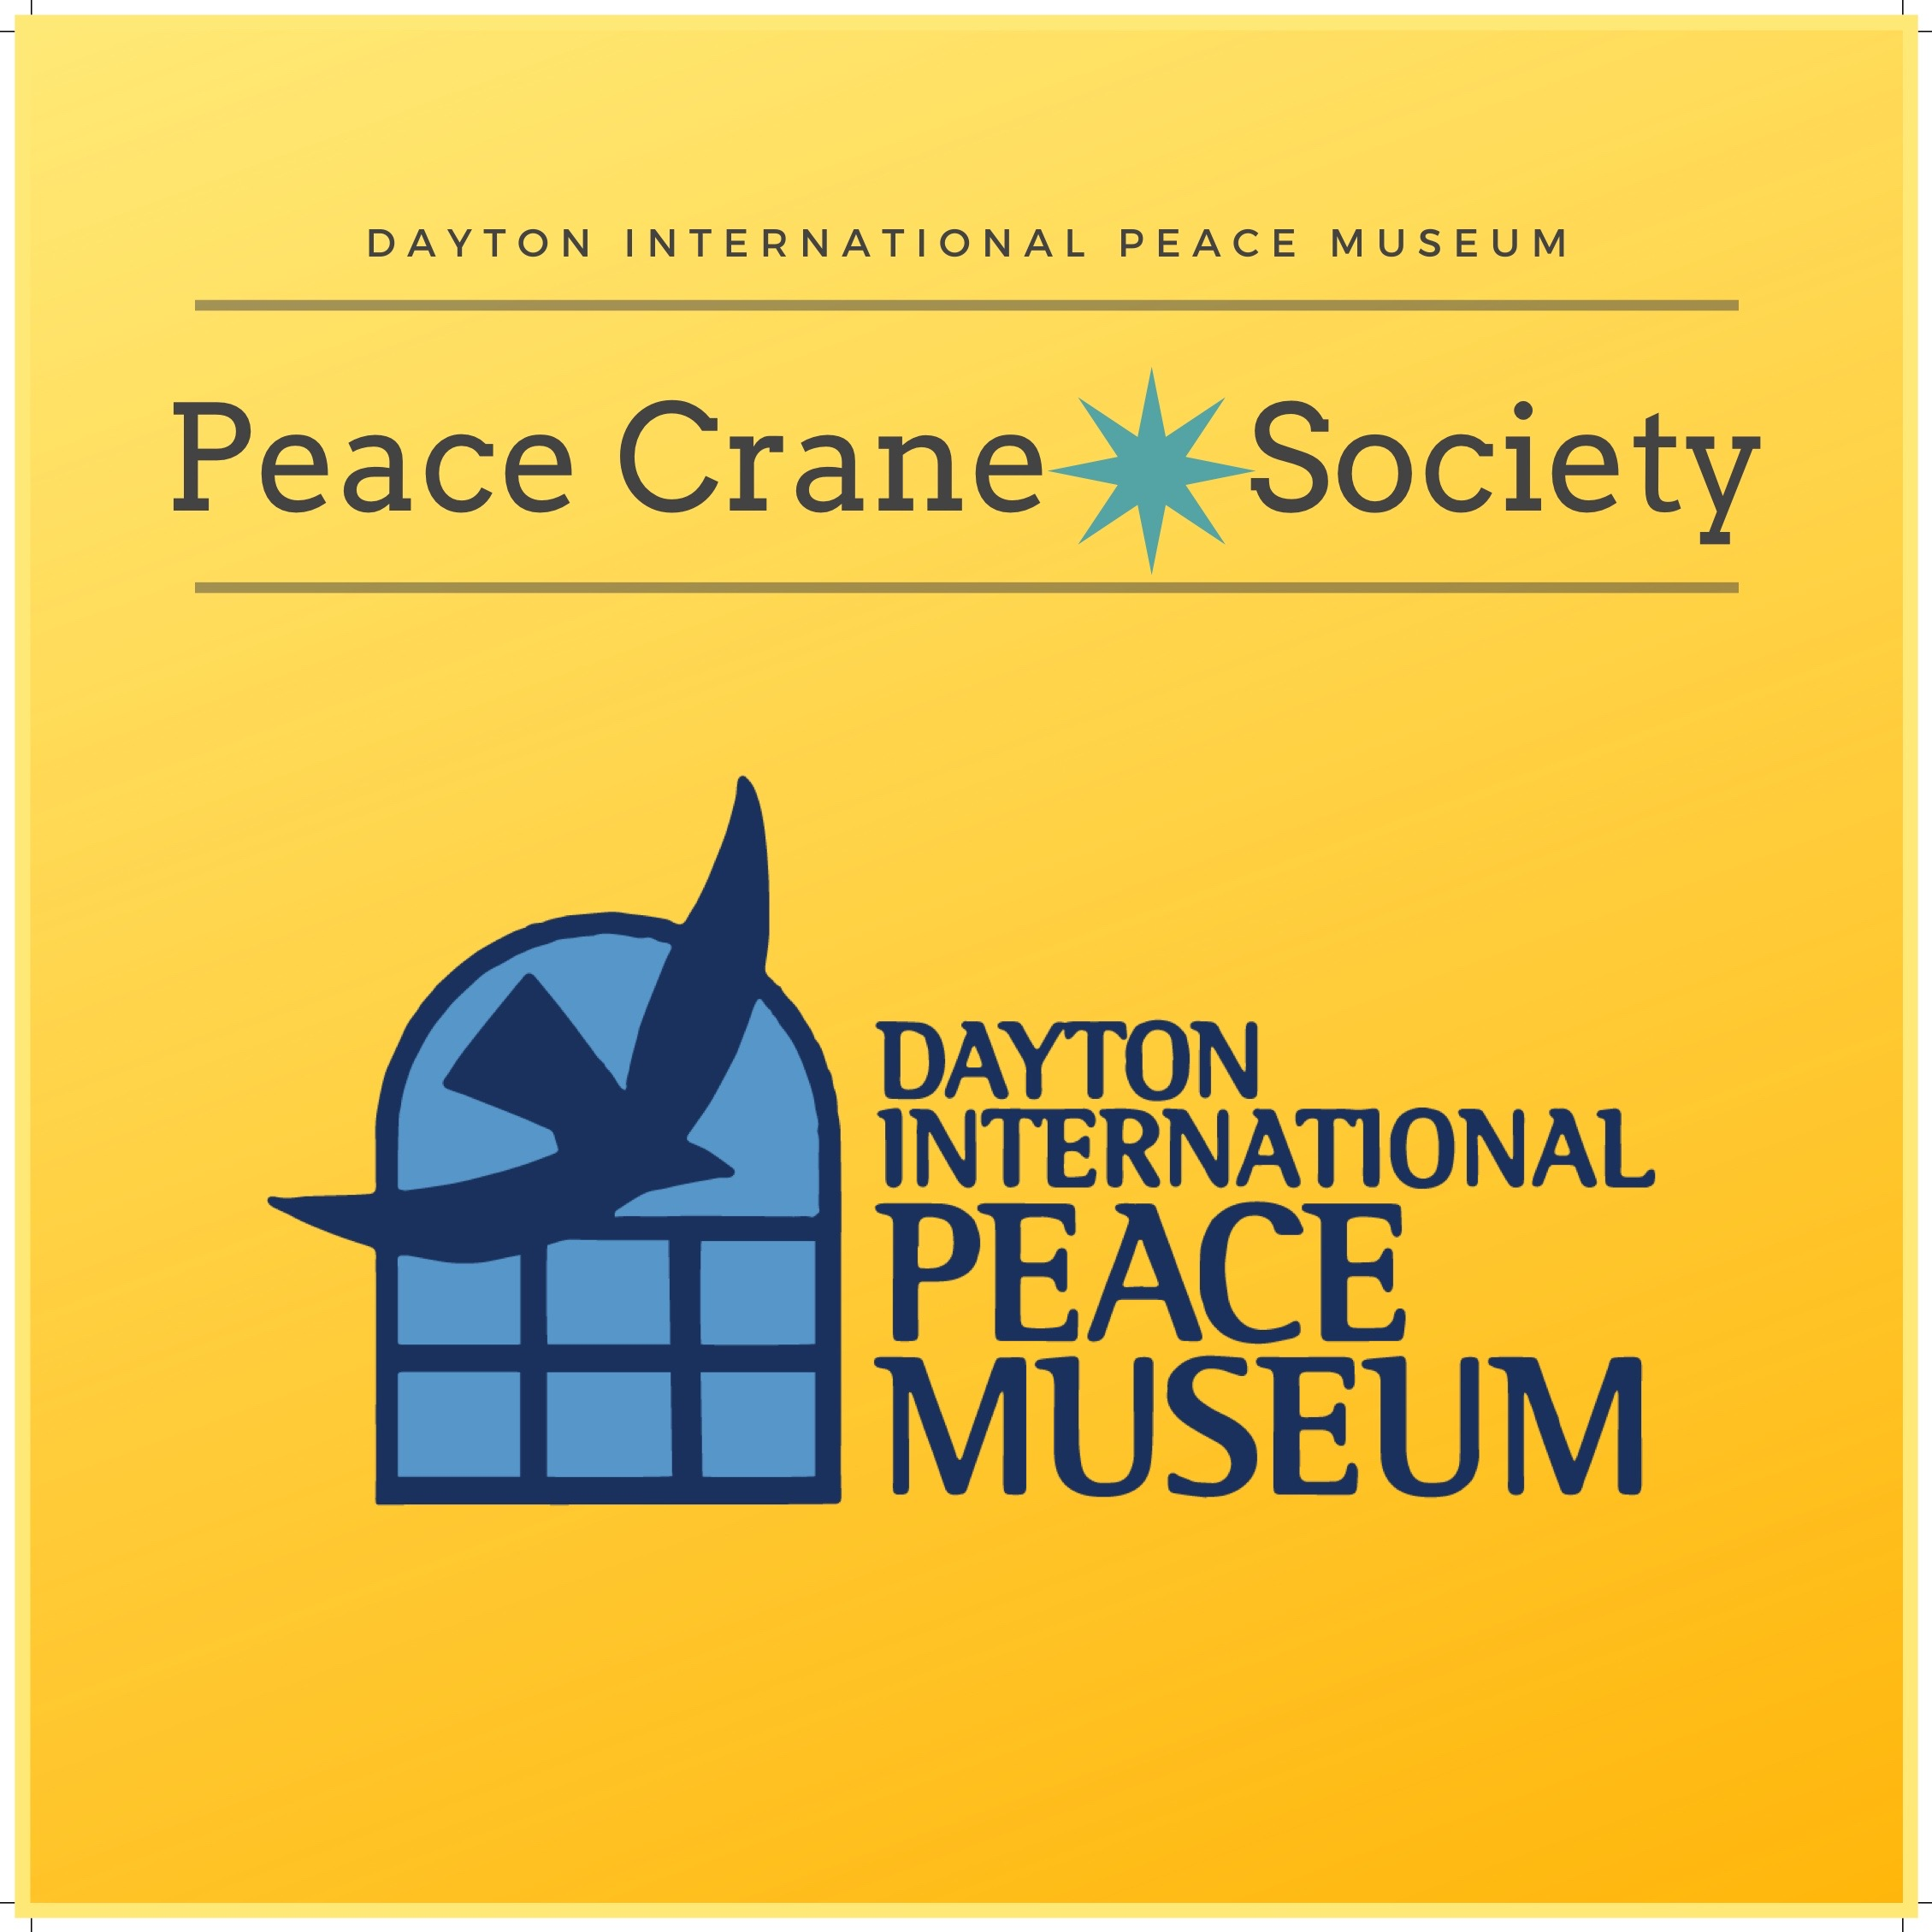 Join at the $100 per month and enjoy the many benefits of being a member of the  Peace Crane Society . Members receive all the perks of the lower memberships plus a large canvas logo tote bag, priority seating at the Nobel Prize Luncheon and exclusive Society member only events.